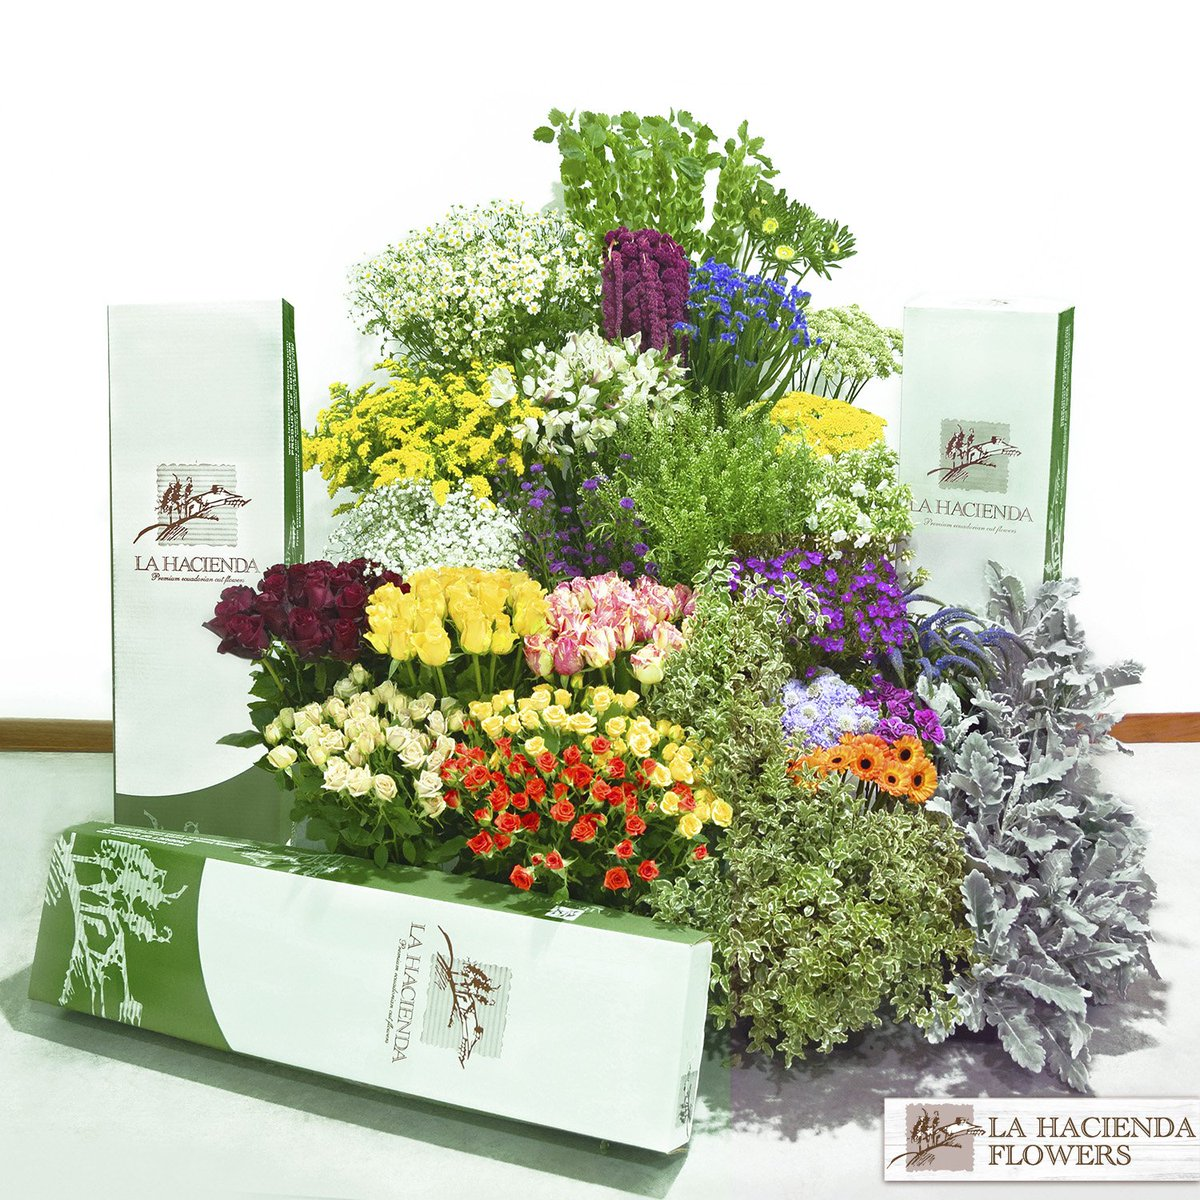 It's a lot of Fun for $99! Ask for our special sample boxes for new customers. From Ecuador to USA in just three days! #ecuadorianflowers #summerflowers #summer #sampleboxesx #lahaciendaflowers